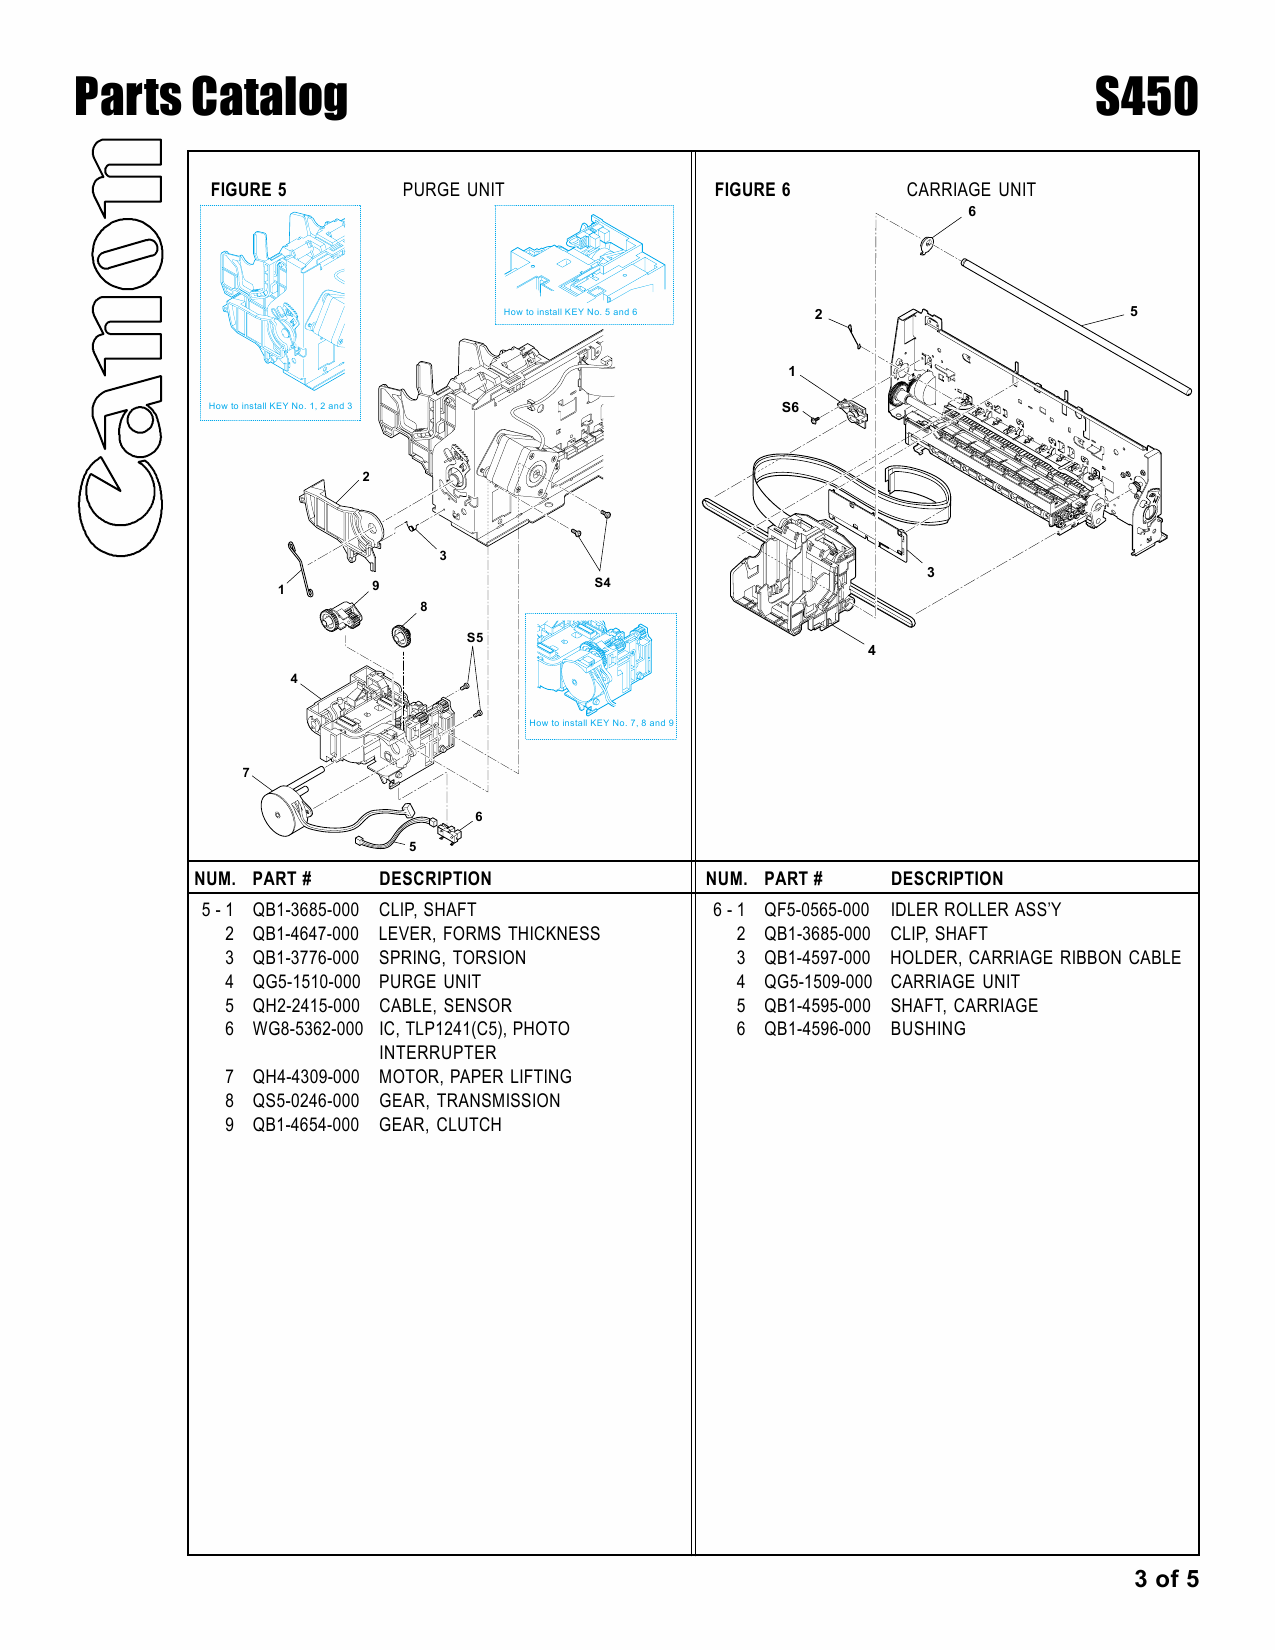 Canon PIXUS S450 Parts Catalog Manual-4